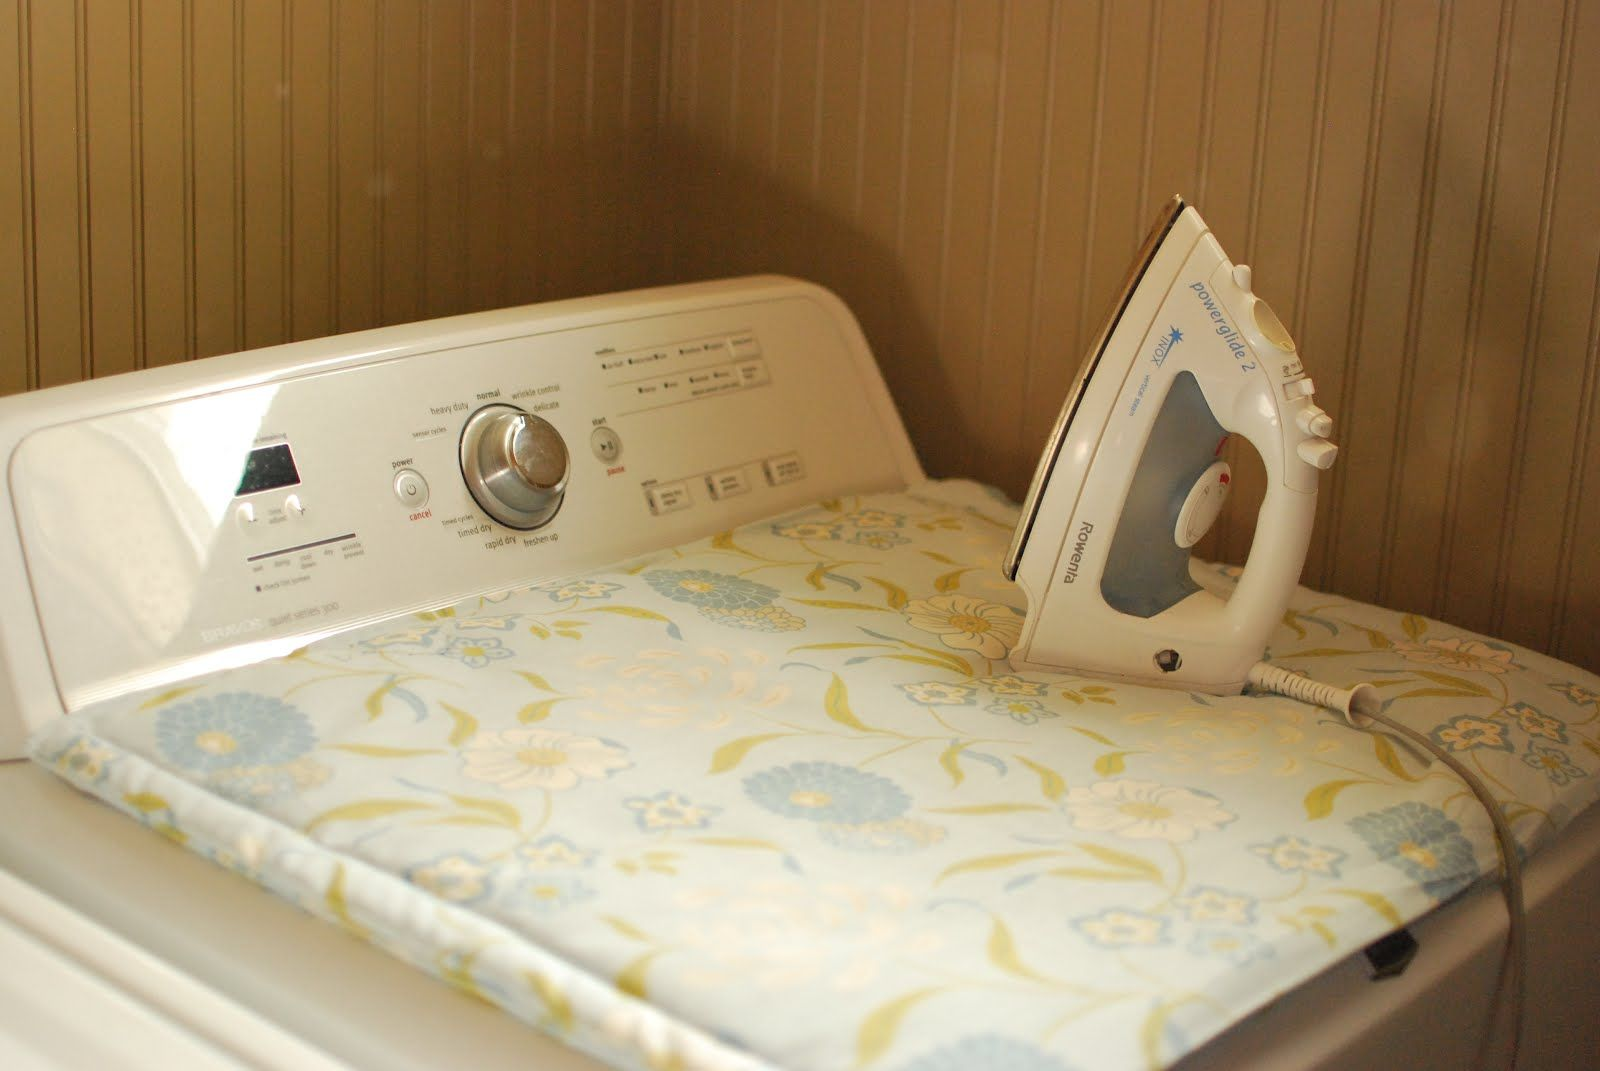 Ironing board for over your dryer - great for small spaces